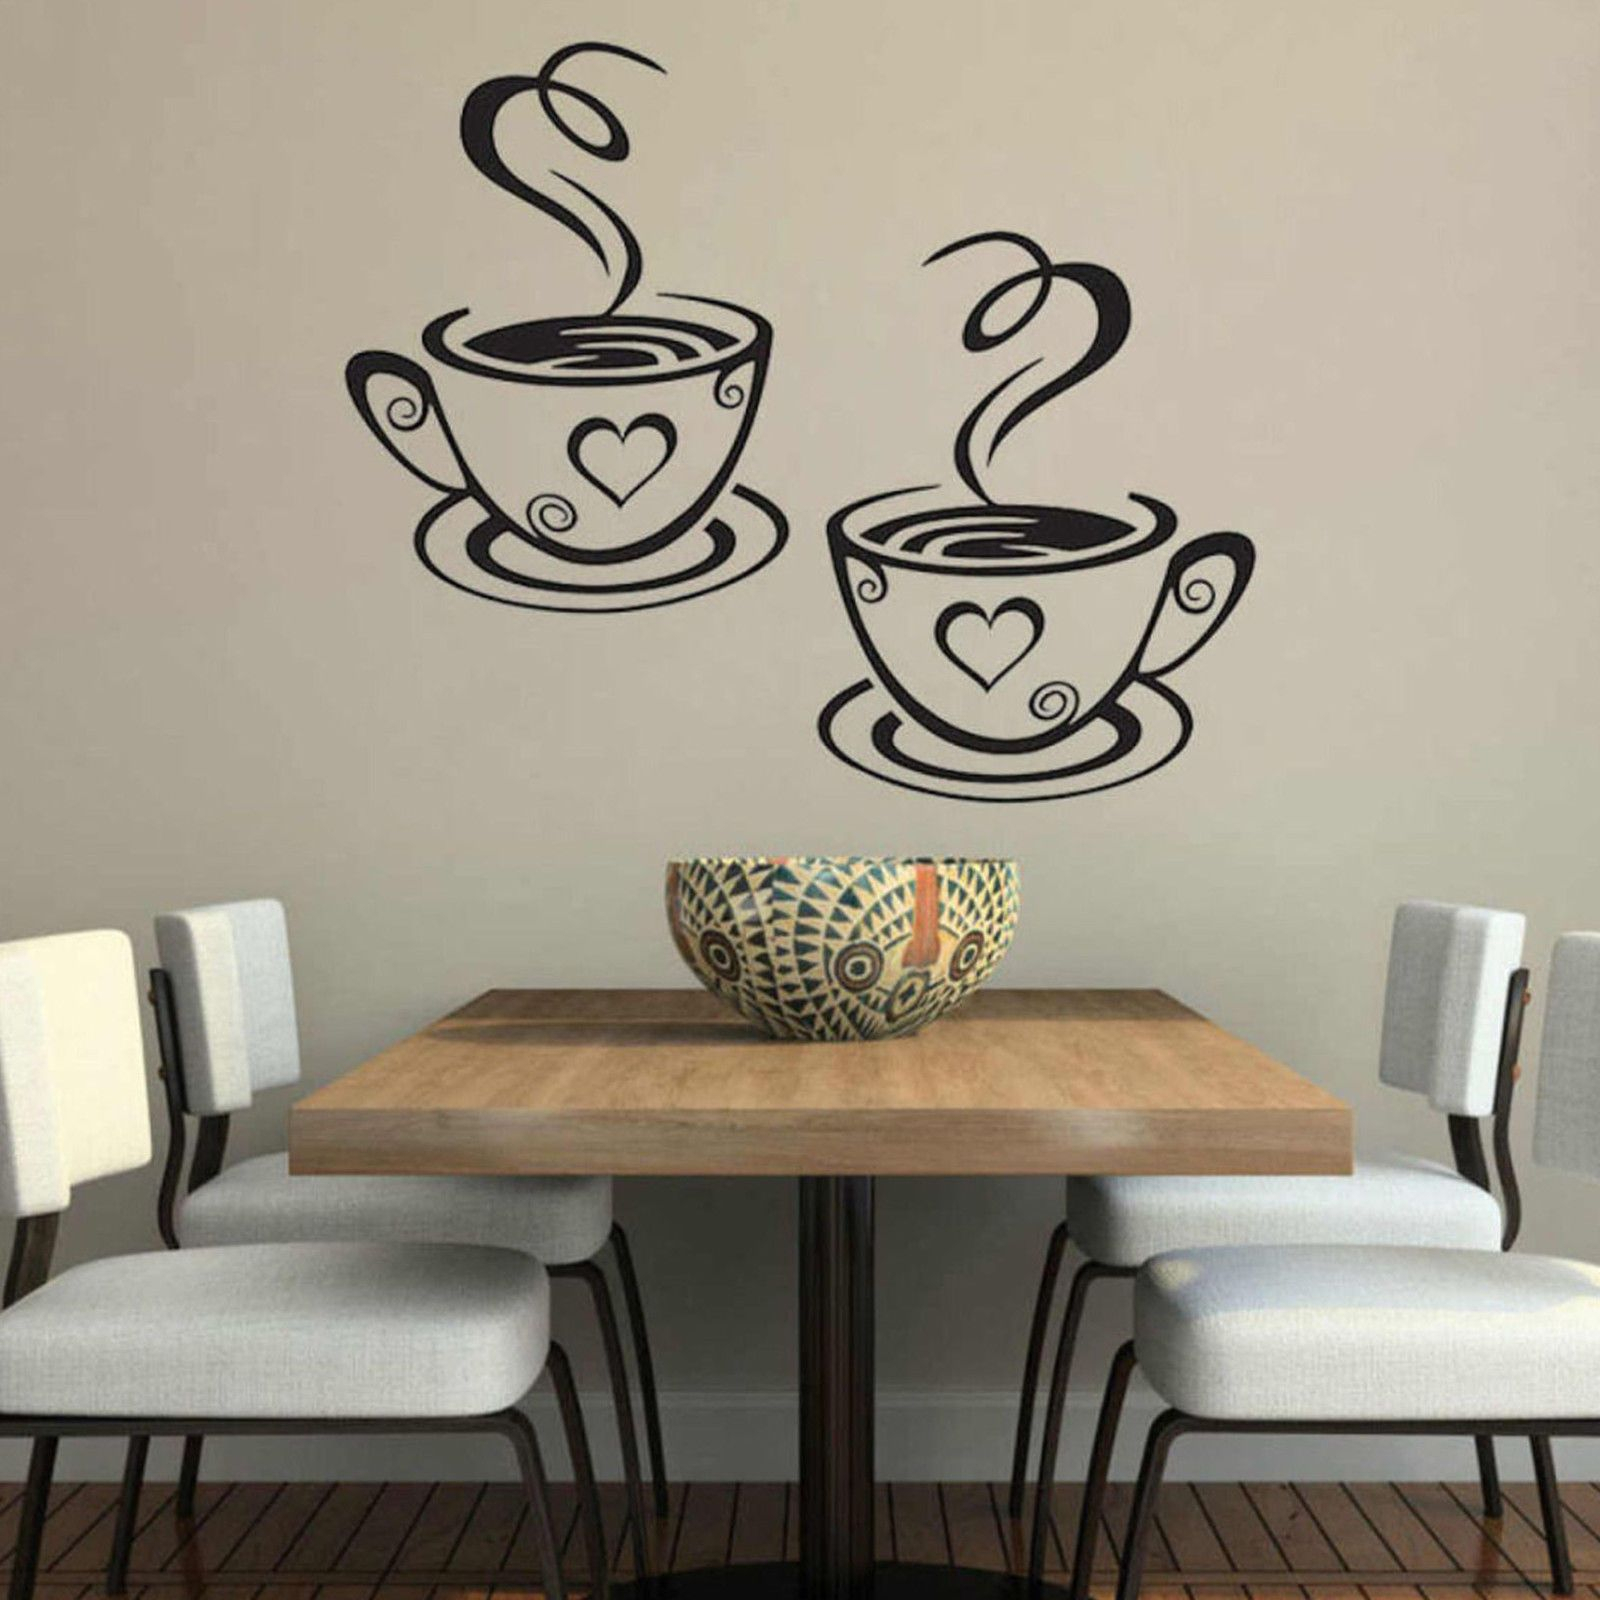 Pinterest – Пинтерест throughout Decorative Three Stacked Coffee Tea Cups Iron Widget Wall Decor (Image 20 of 30)